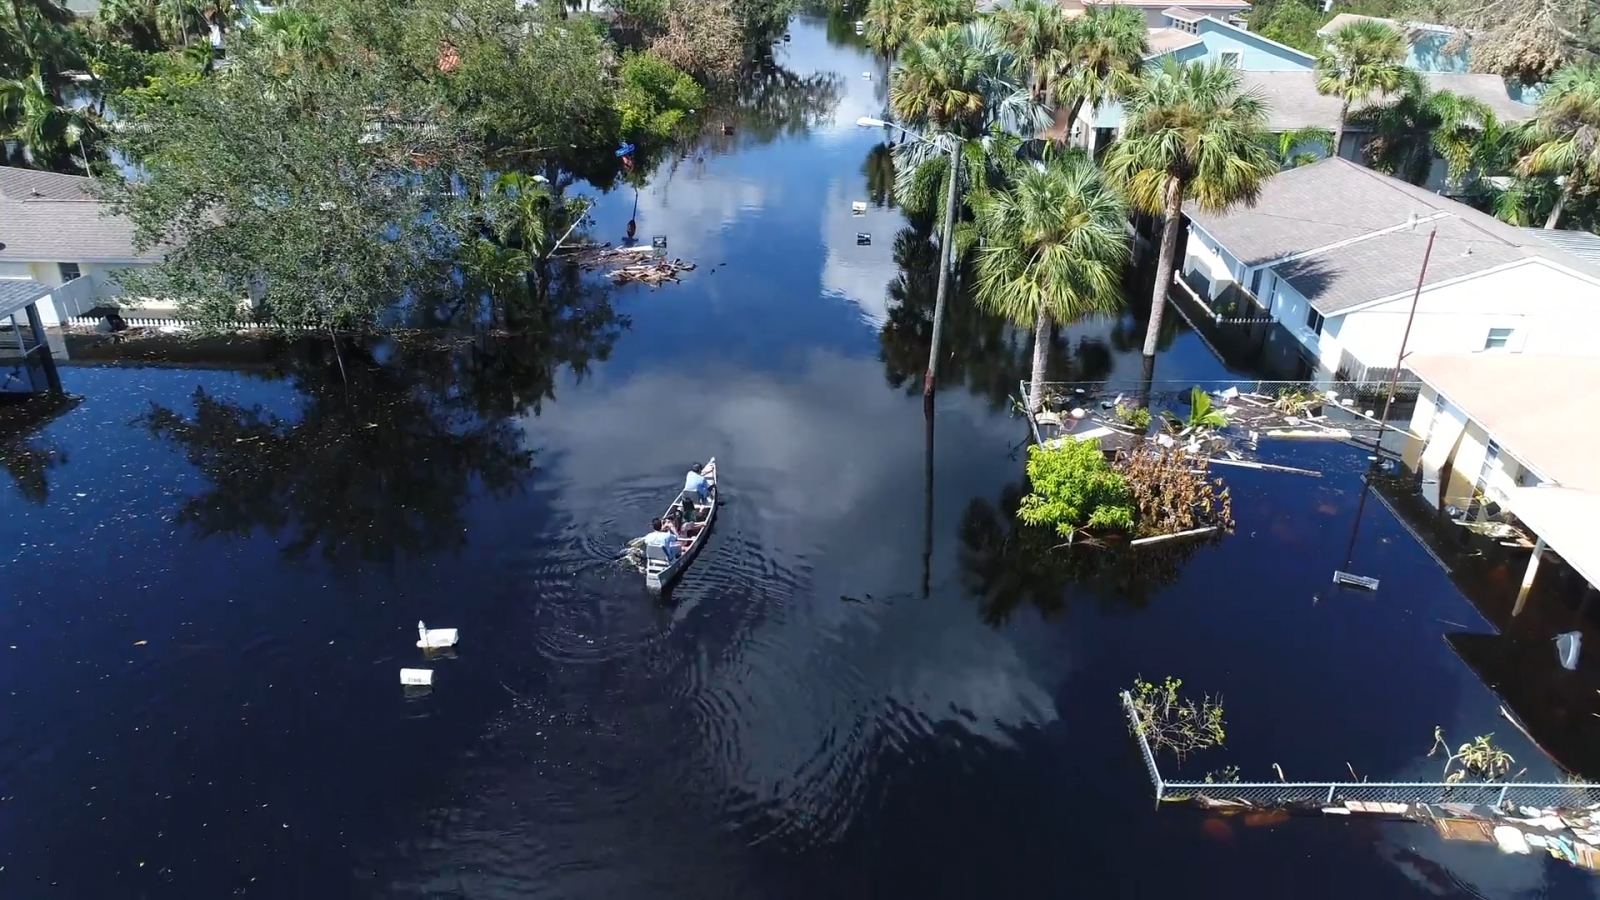 Drone footage highlights the scale of flooding in Florida